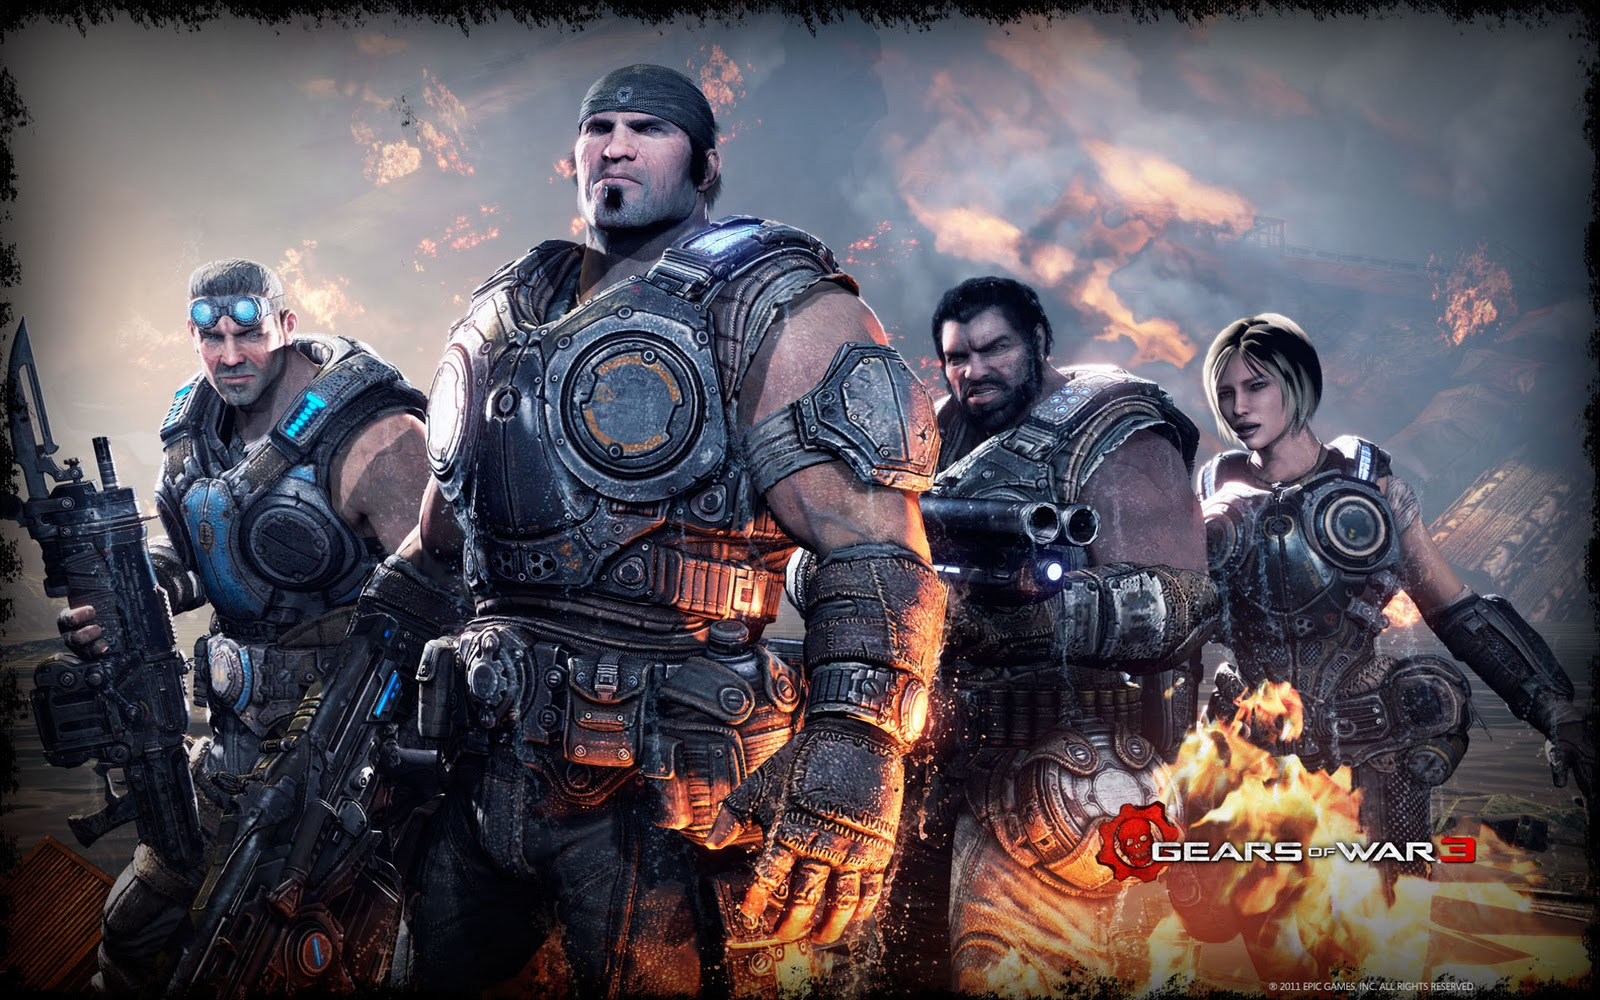 Gears of War HD & Widescreen Wallpaper 0.424614846194577